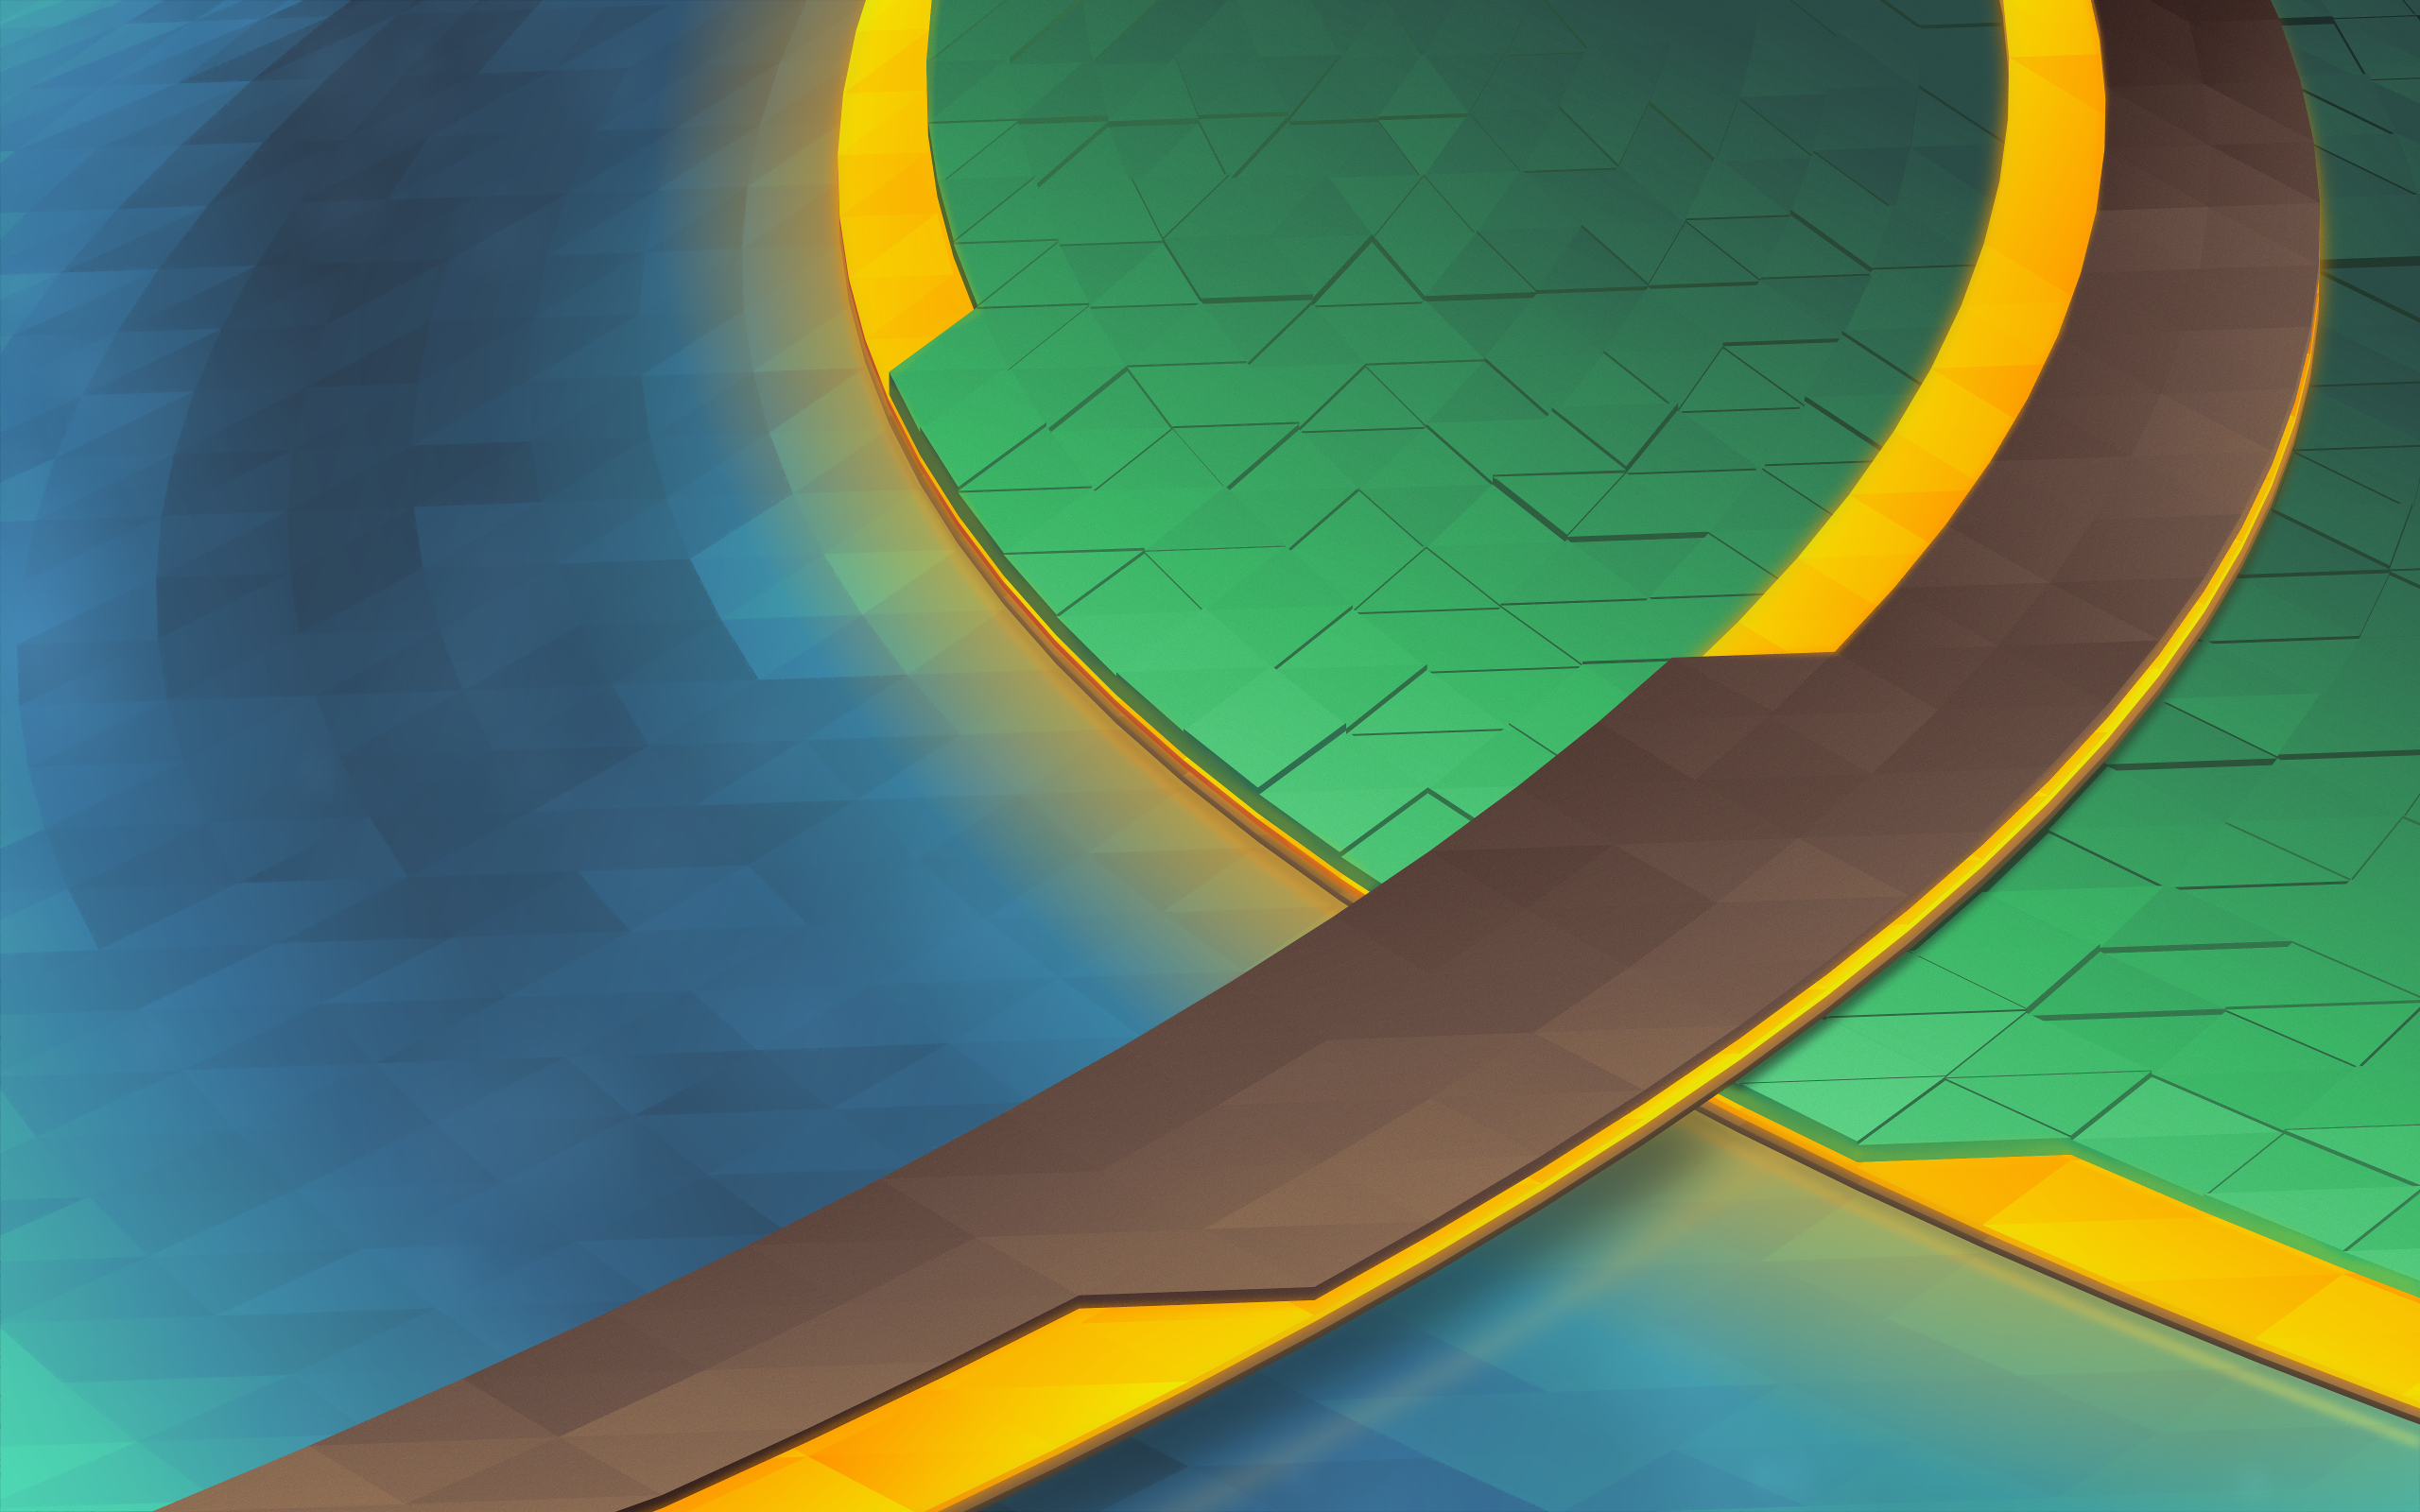 Download the beautiful Canopee wallpaper for KDE Plasma 5.9